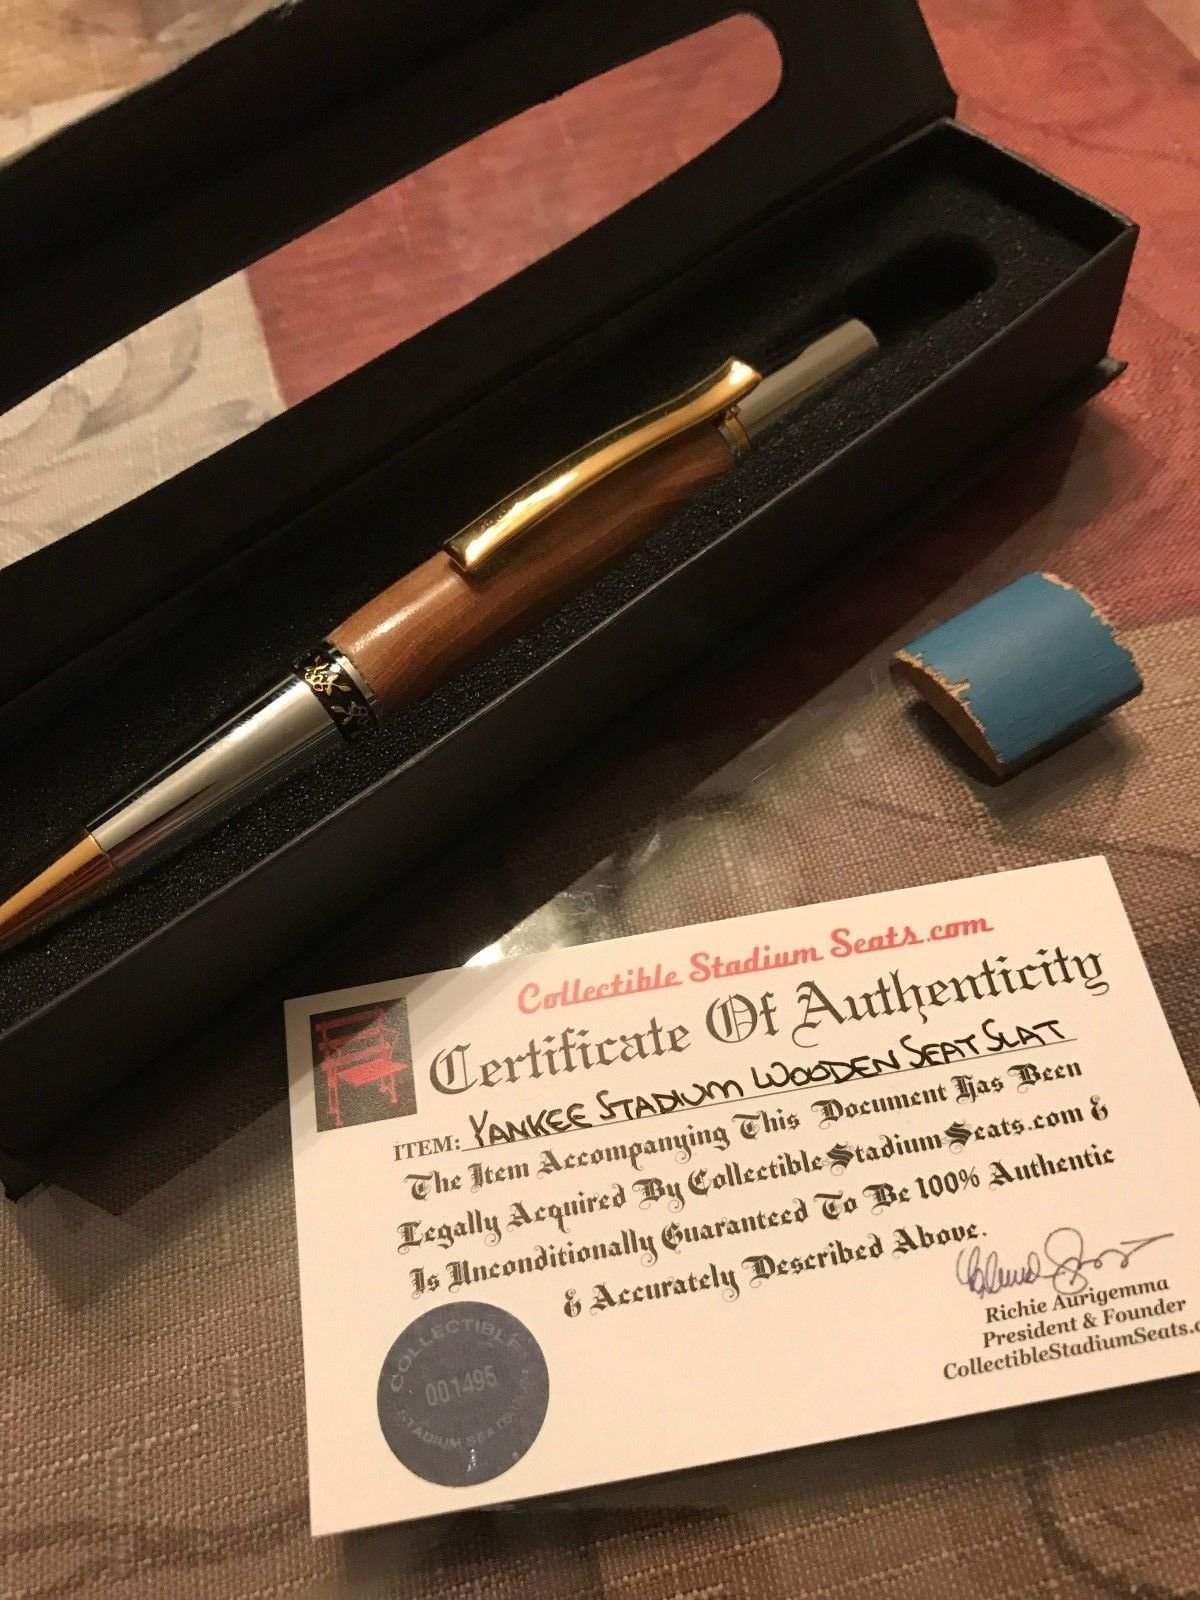 Genuine Yankee Stadium Seat pen From old Yankee's Stadium with COA